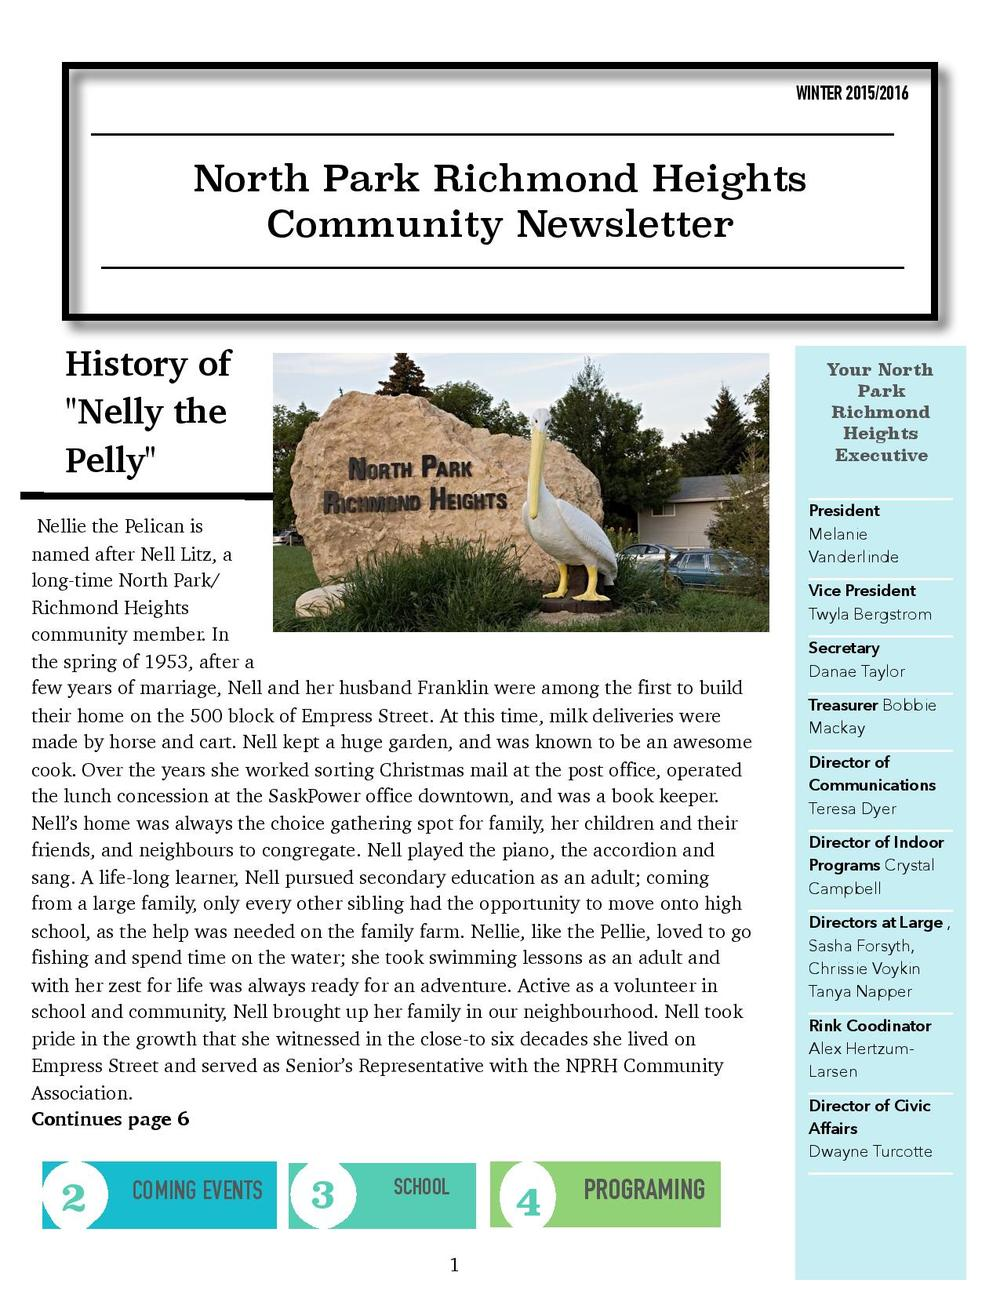 North Park Richmond Heights Winter 2015-2016-page-001.jpg